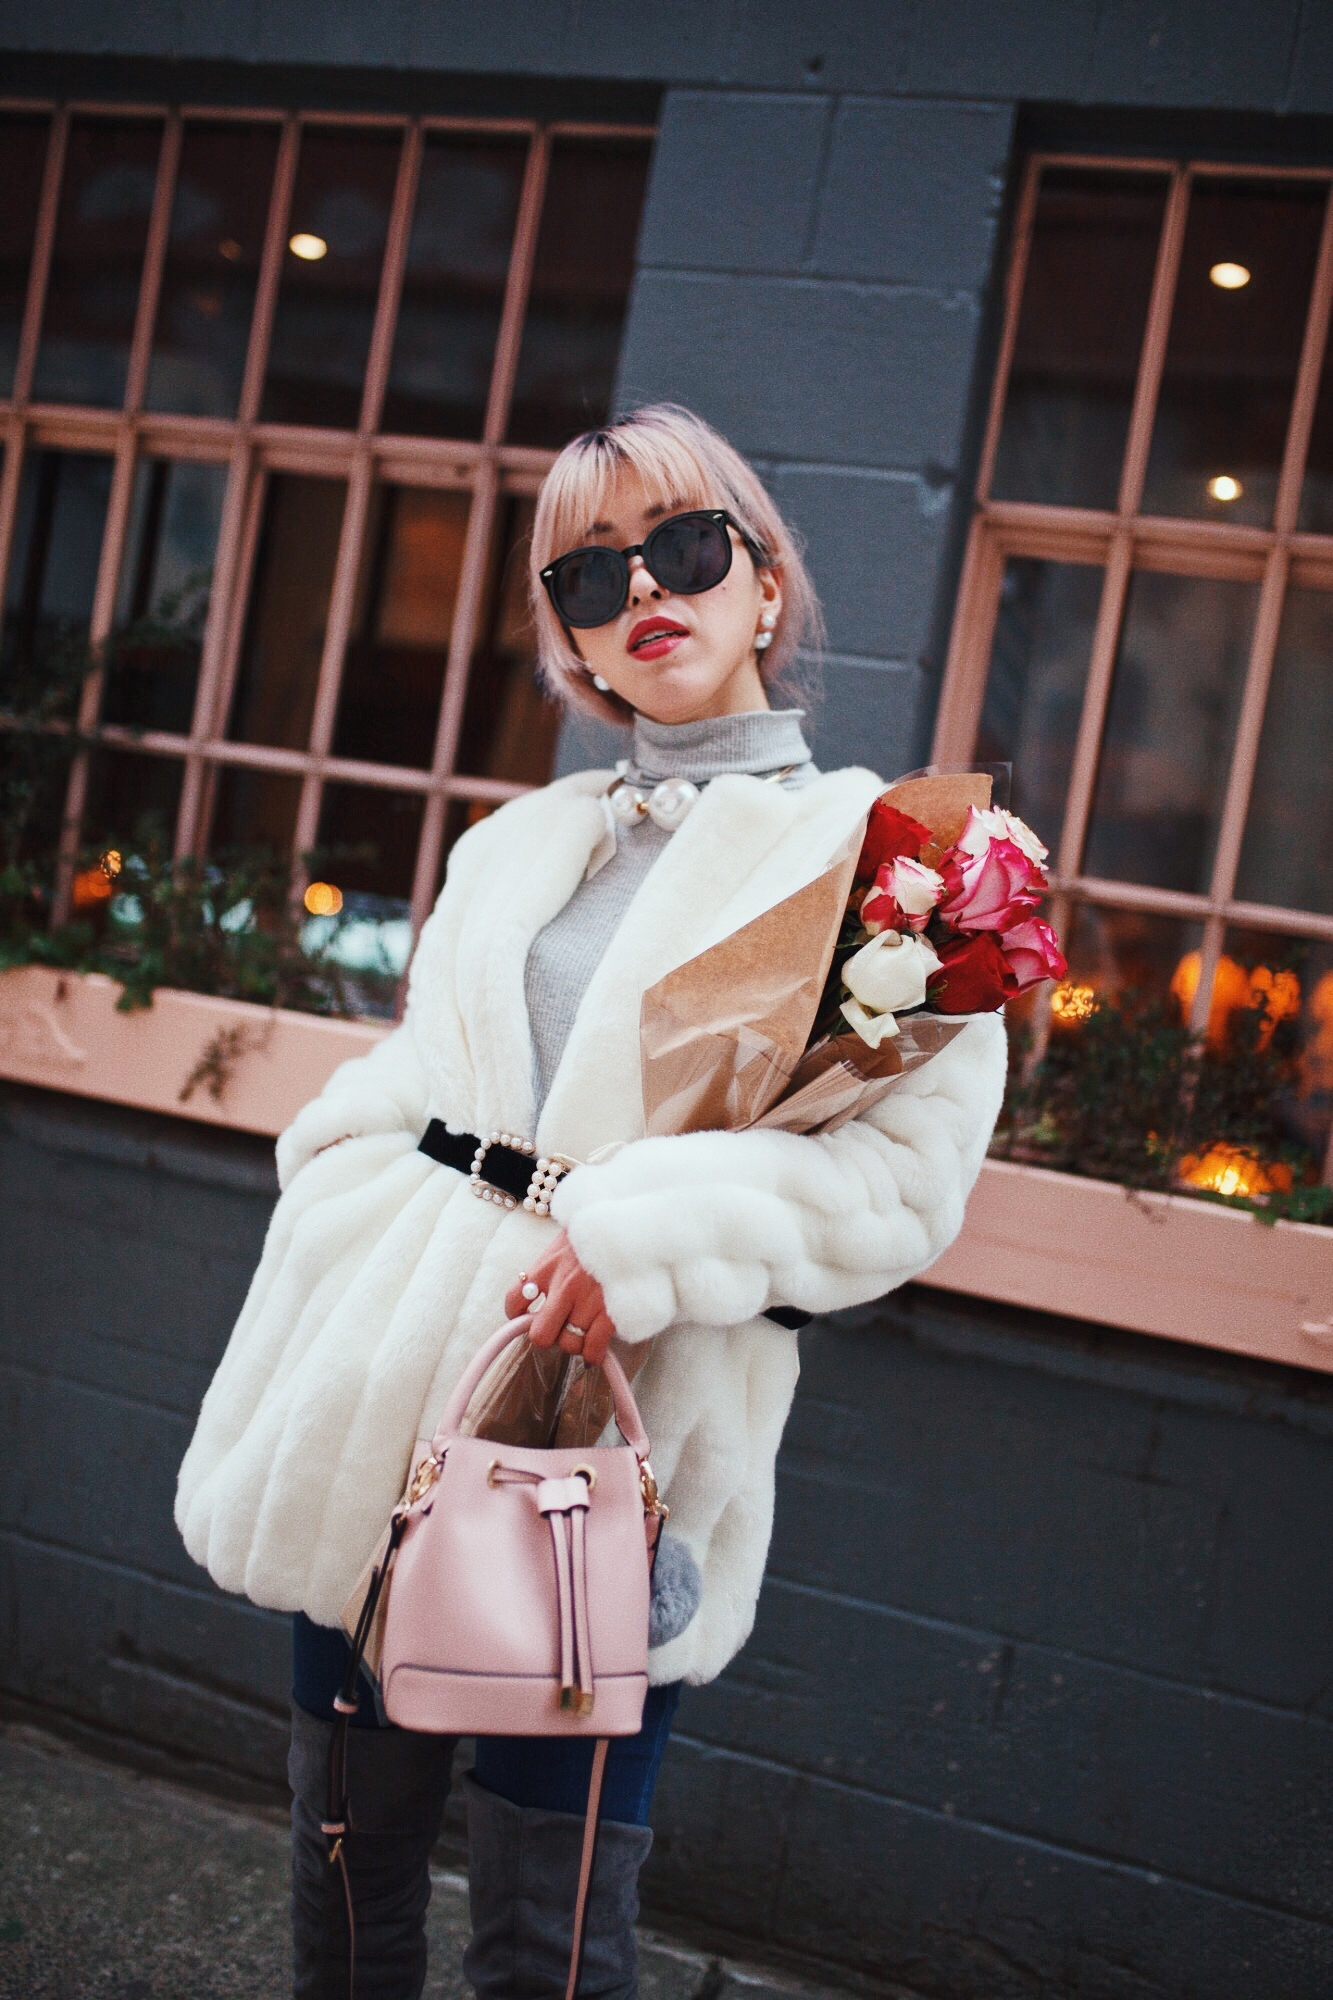 H&M Gray Turtleneck Sweater-ASOS high waisted skinny jean-EGO Grey Over the Knee Boots-While Faux Fur Coat-Forever 21 Pearl Belt & Pink Mini Basket Bag-Chanel Ribbon Hair-Valentine's Day-Rose bouquet-Pink Hair-Japanese-Seattle Style Fashion Blogger-AikA's Love Closet 6